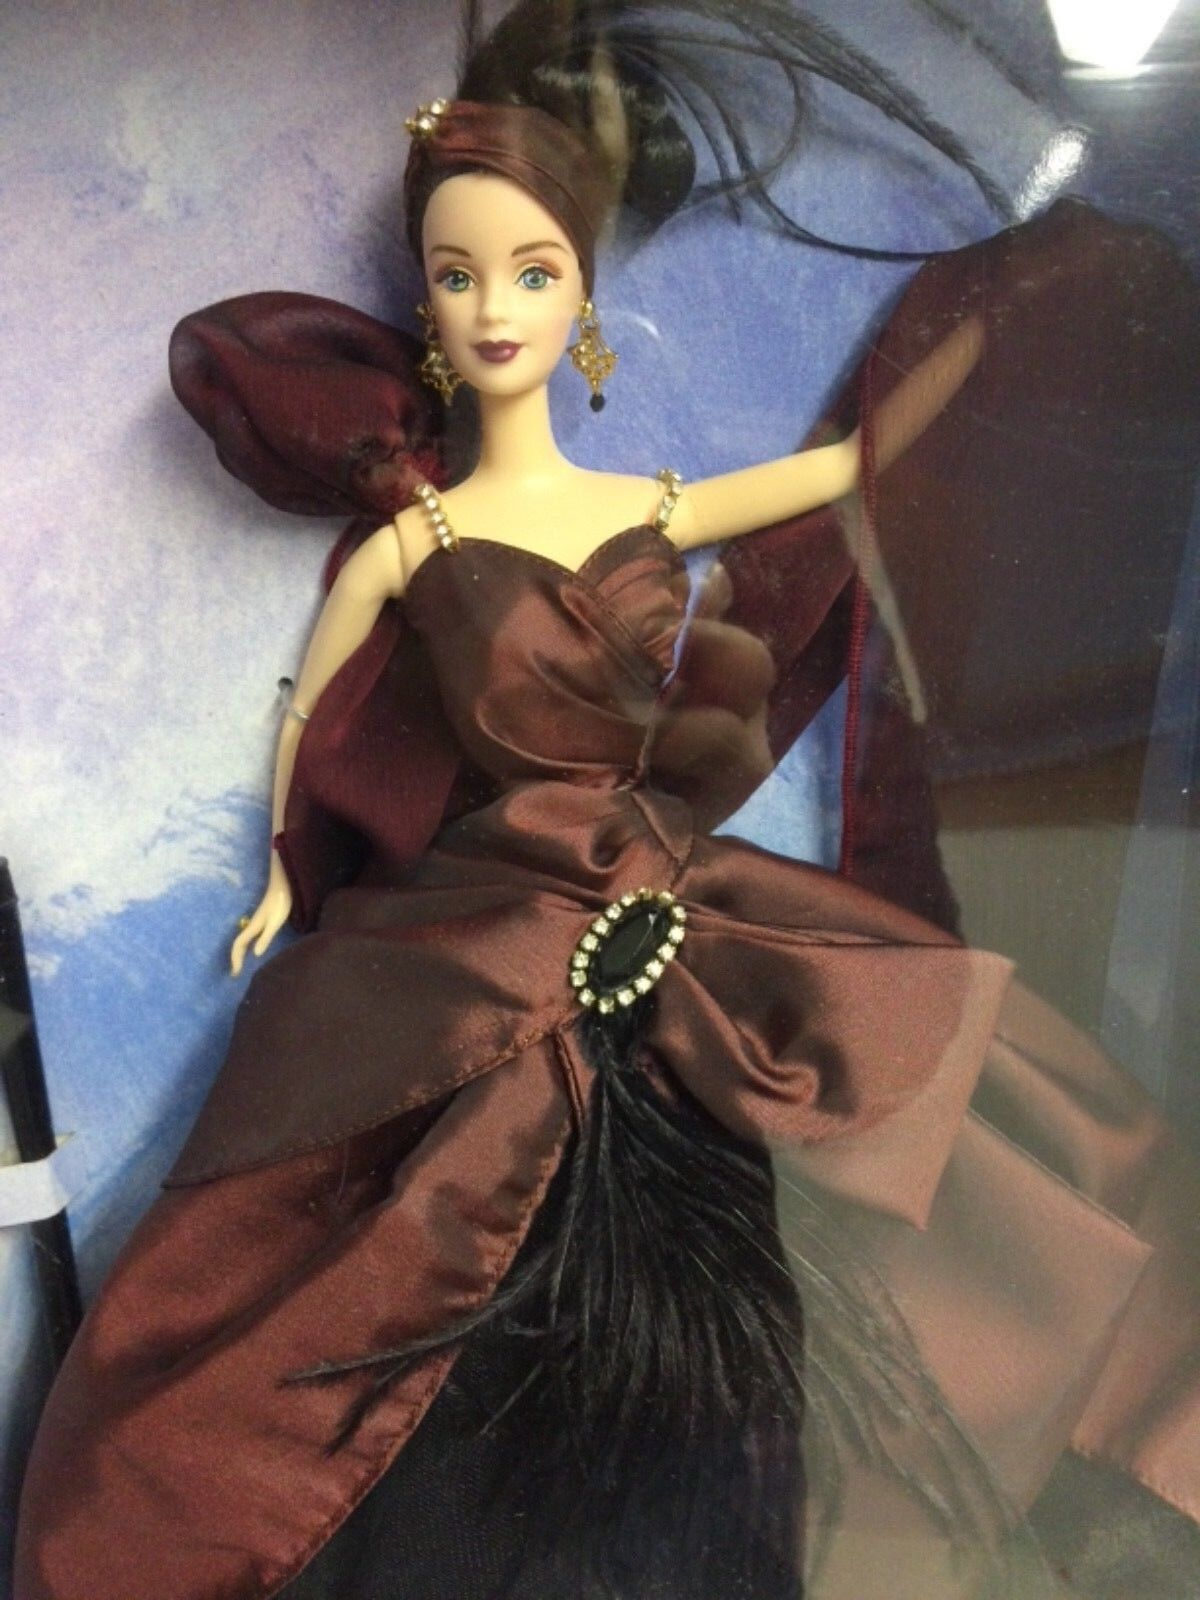 Limited edition, Moonlight waltz barbie doll, Signed